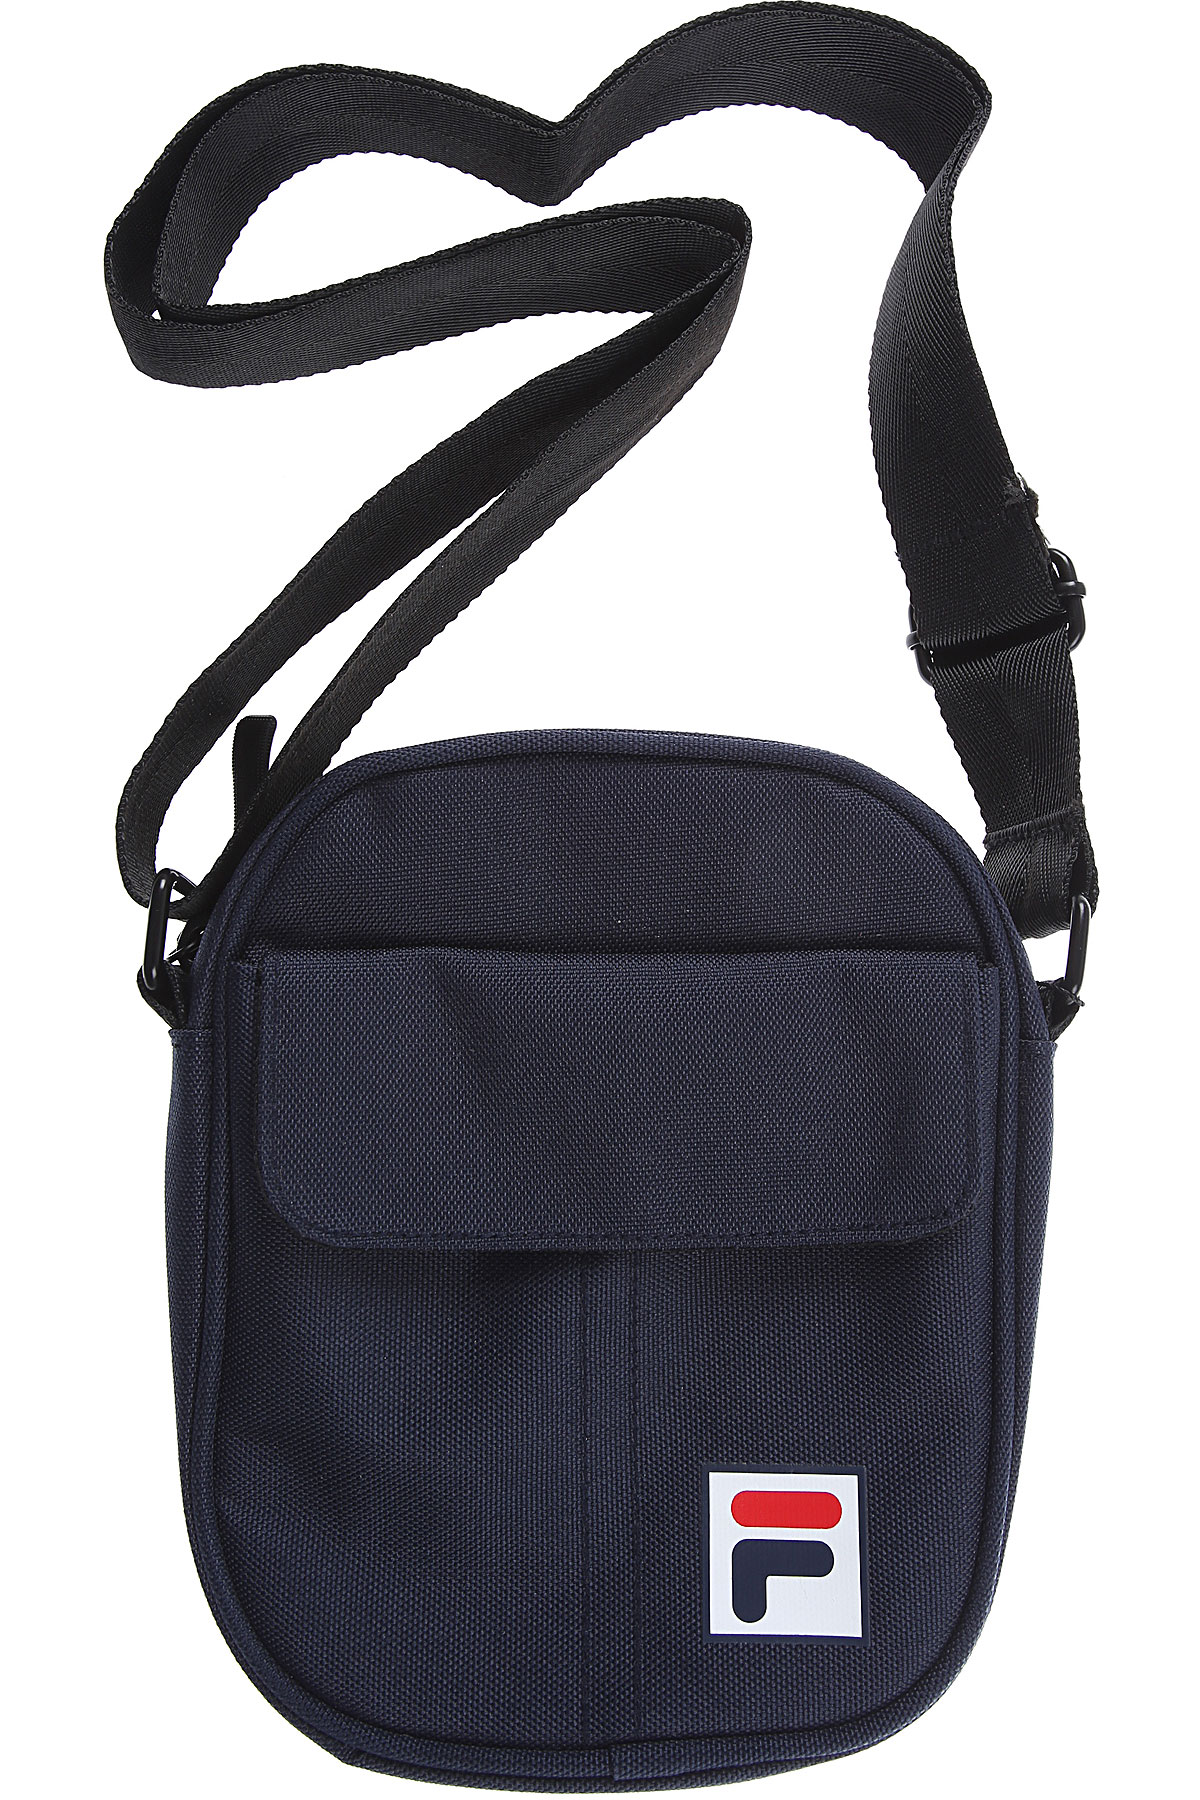 Fila Briefcases On Sale in Outlet, Black Iris, Nylon, 2019